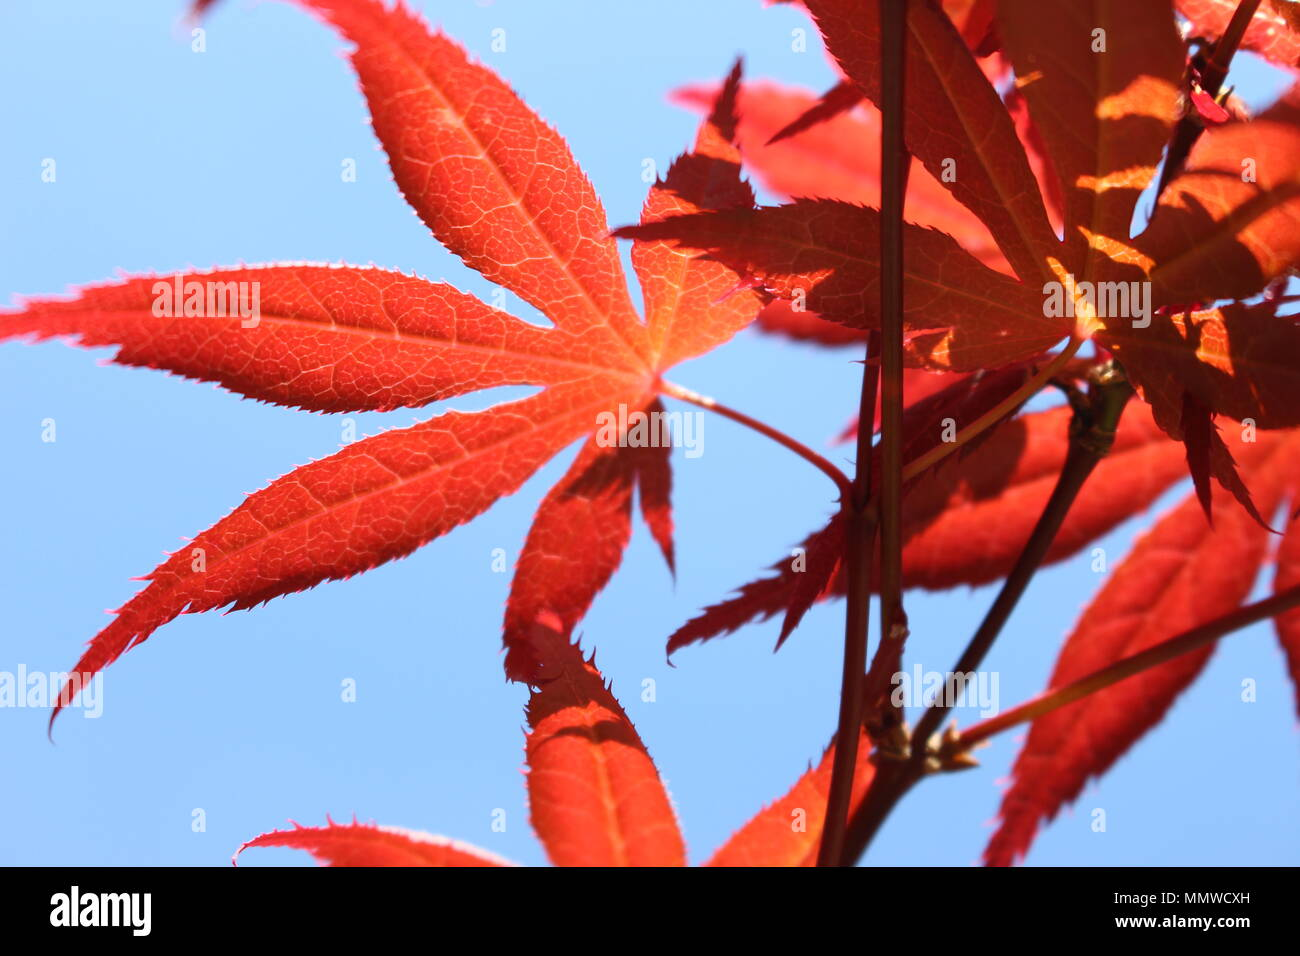 Photograph of acer leaves, japanese maple tree. Beautiful red and orange foliage against a summer blue sky Stock Photo